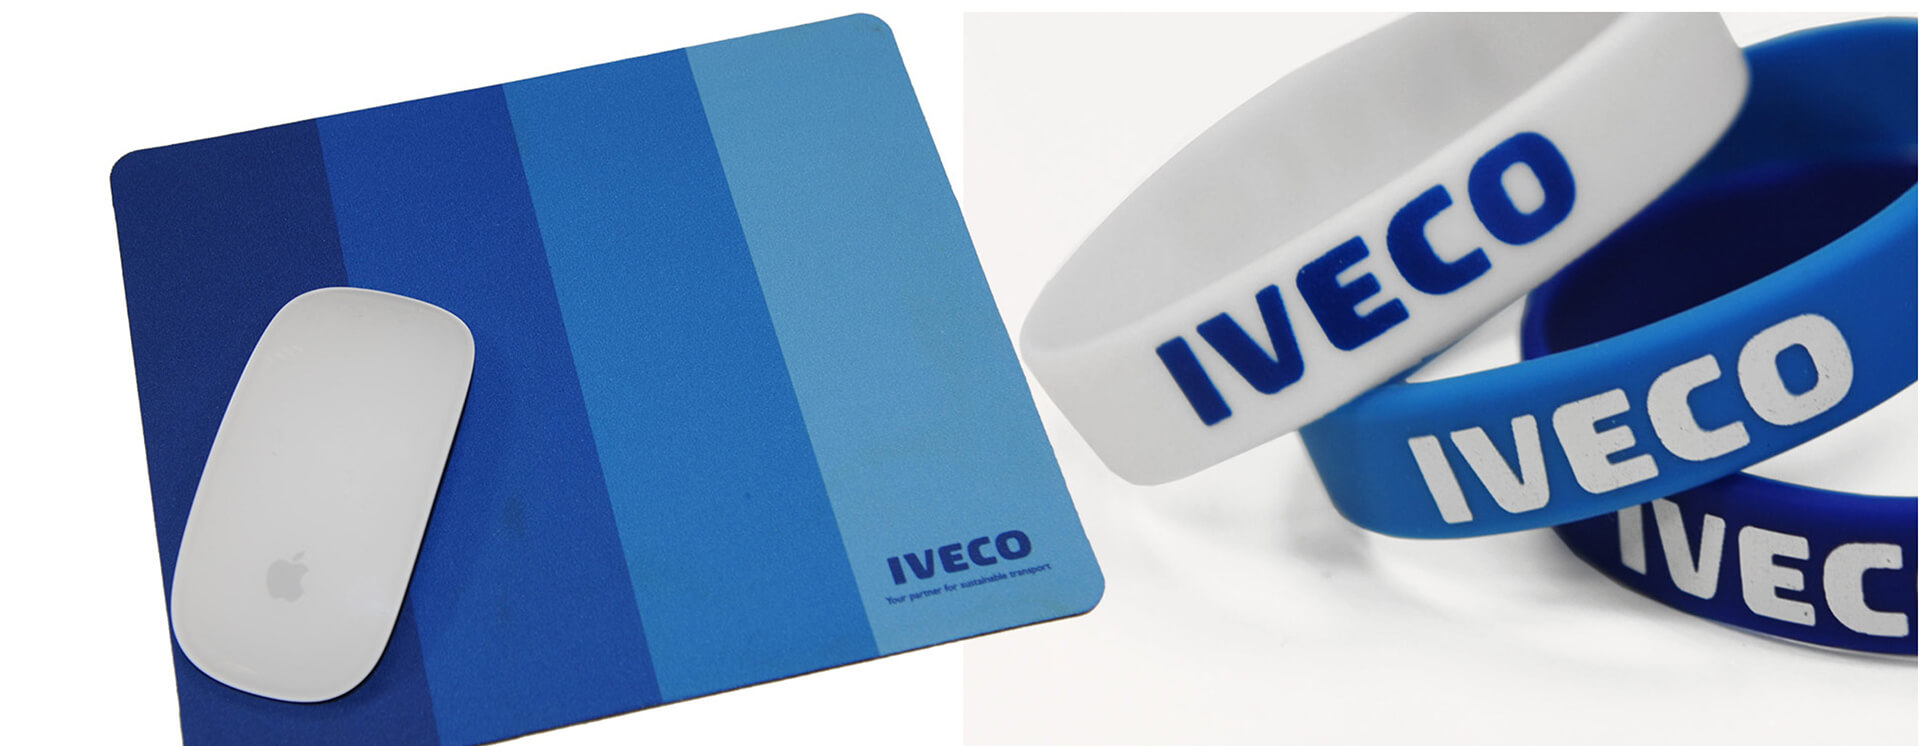 [Translate to English:] Merchandise mit Iveco-Logo